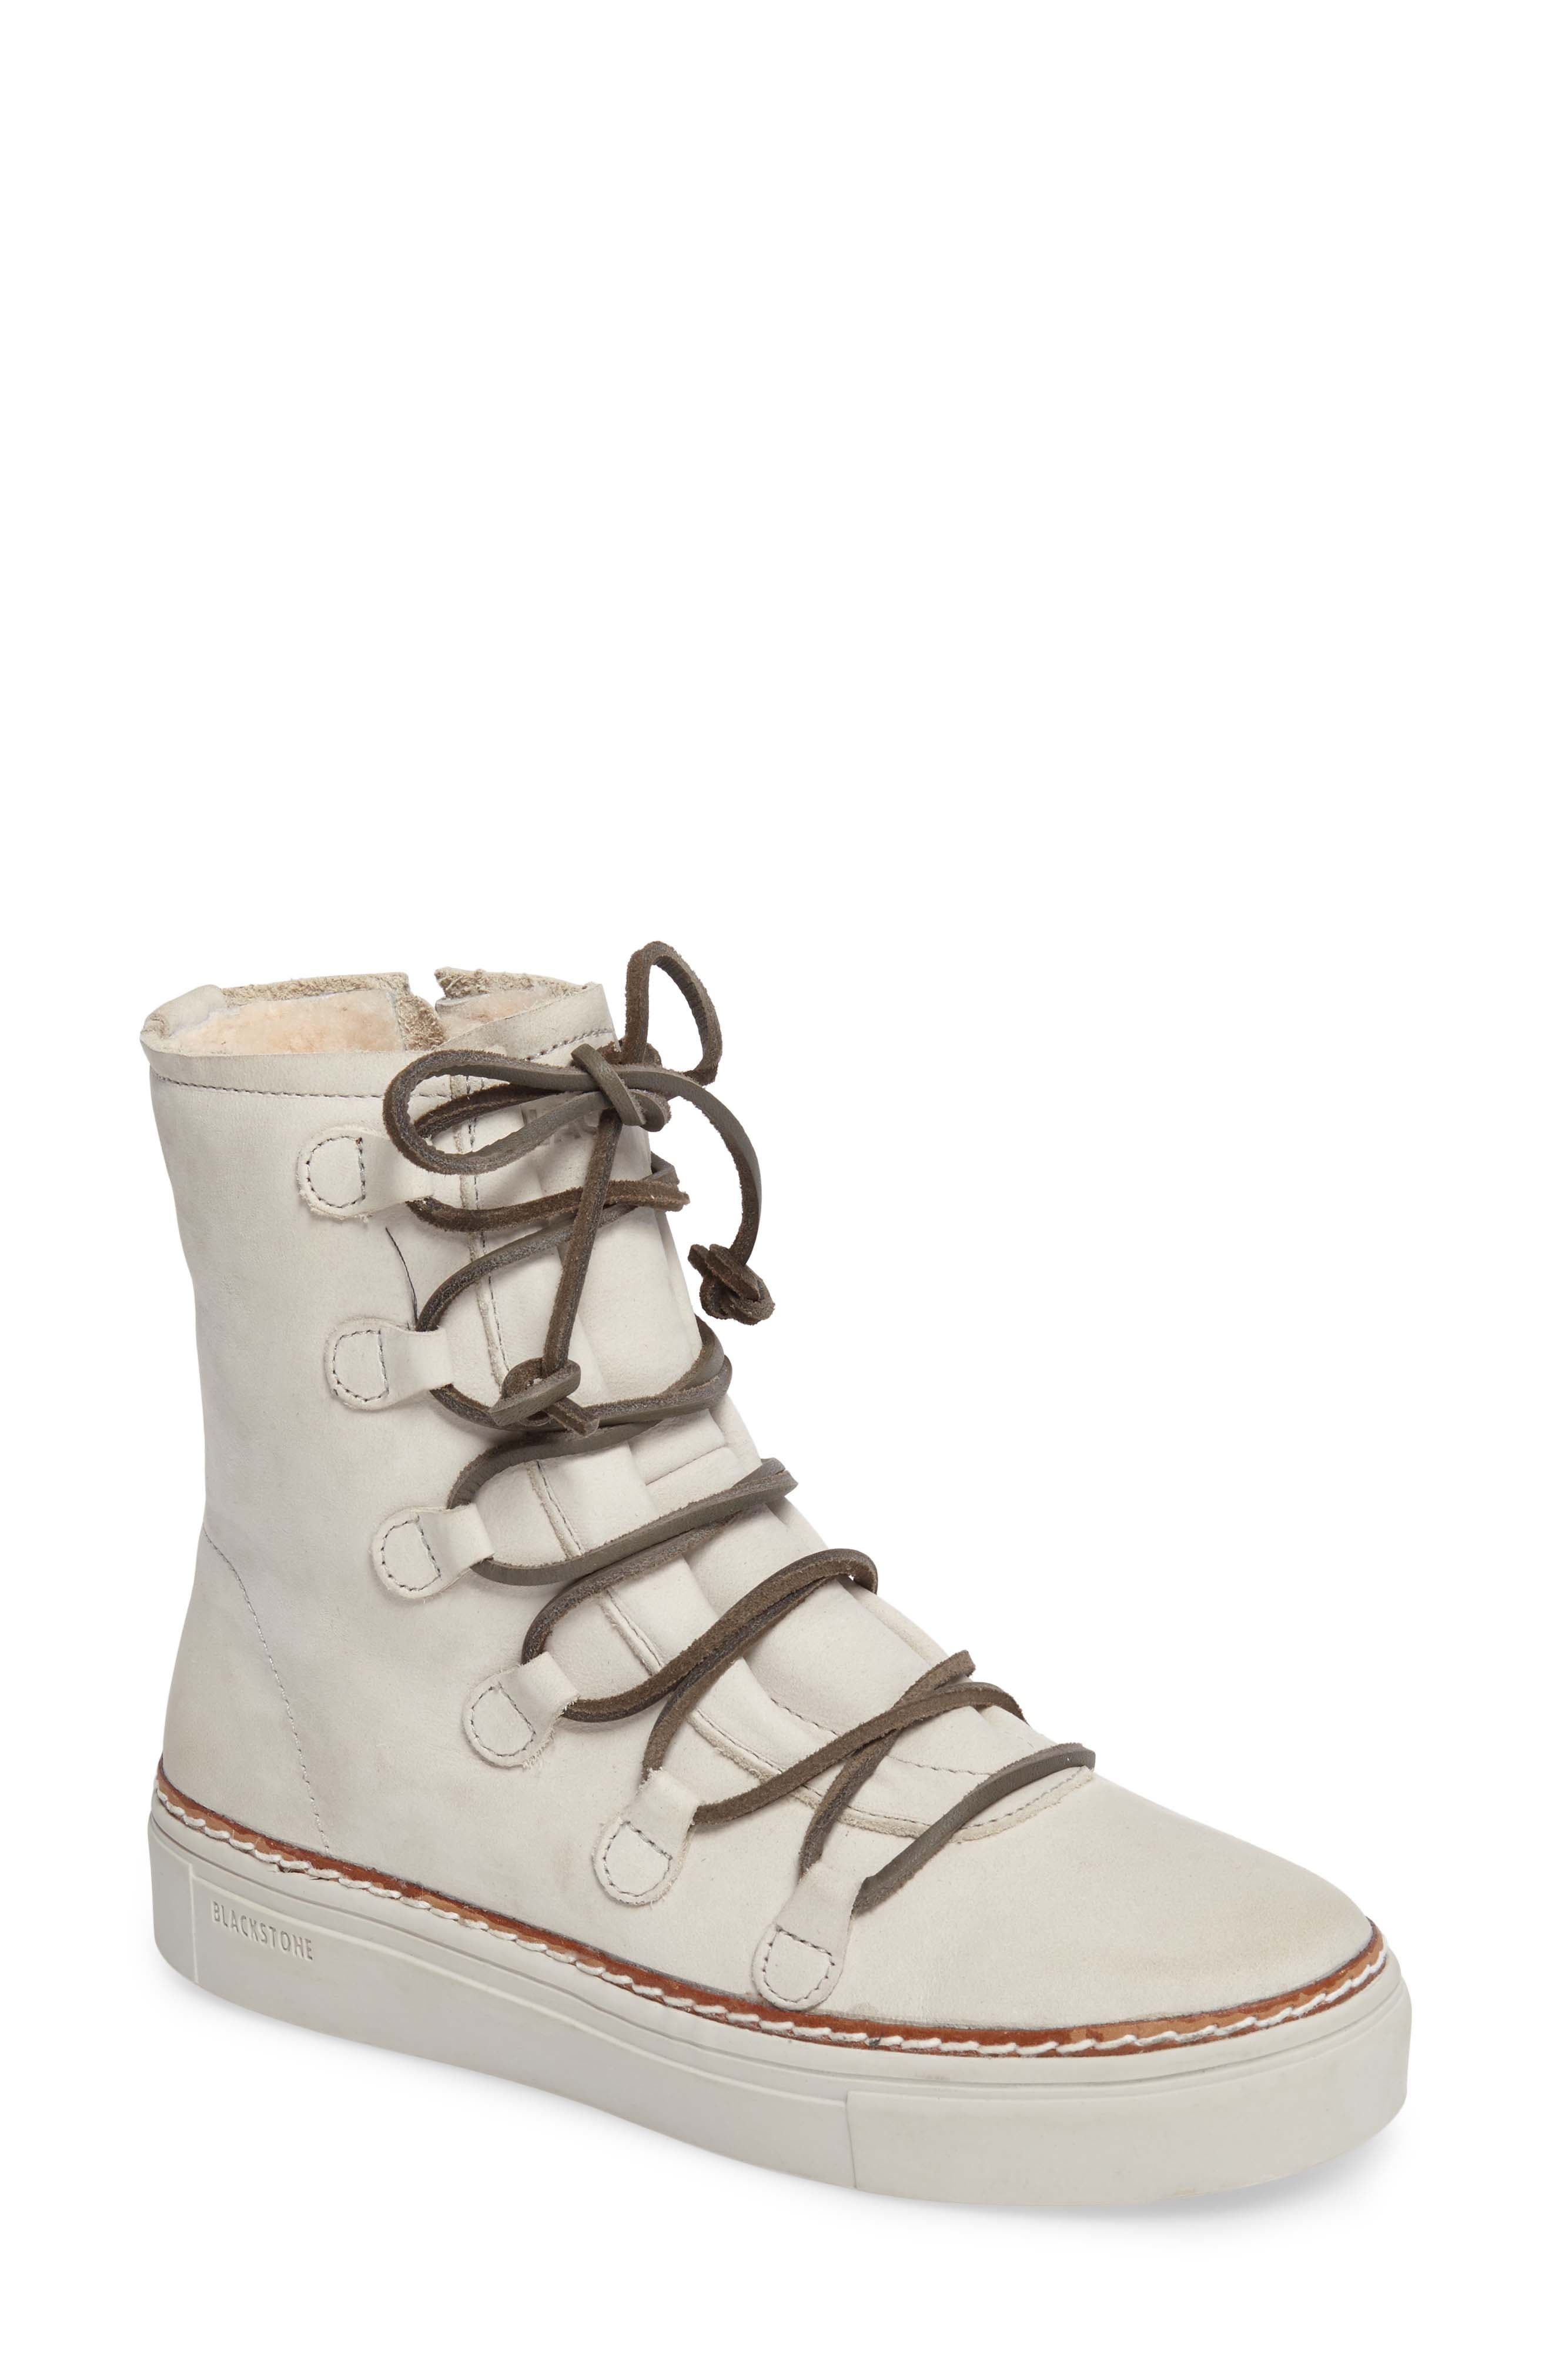 Main Image - Blackstone OL26 Genuine Shearling Lined Lace-Up Bootie (Women)